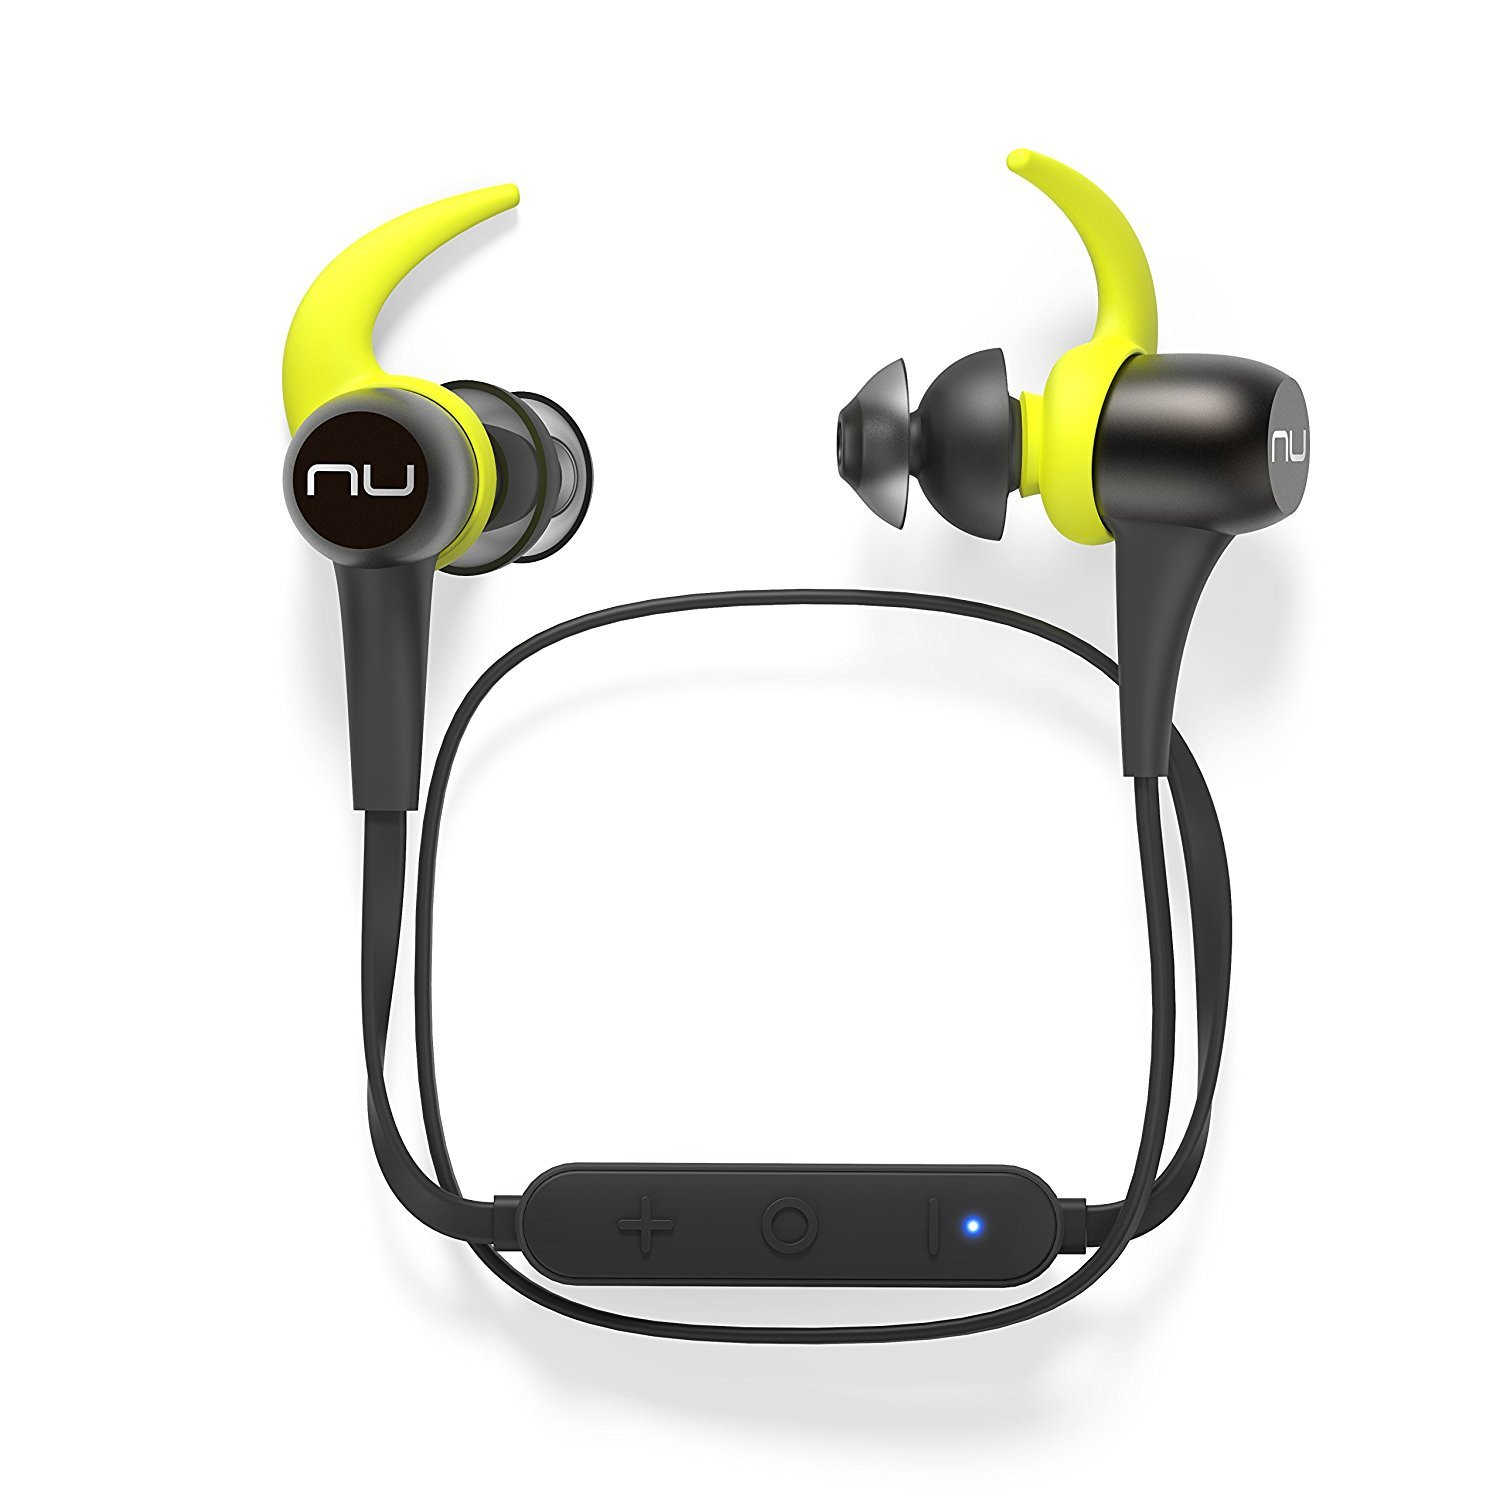 NuForce BE Sport3 Wireless Bluetooth in-Ear Headphones for Sports with aptX, AAC and 10h Battery Life, Water- and Sweat Resistant Earbud, Gunmetal